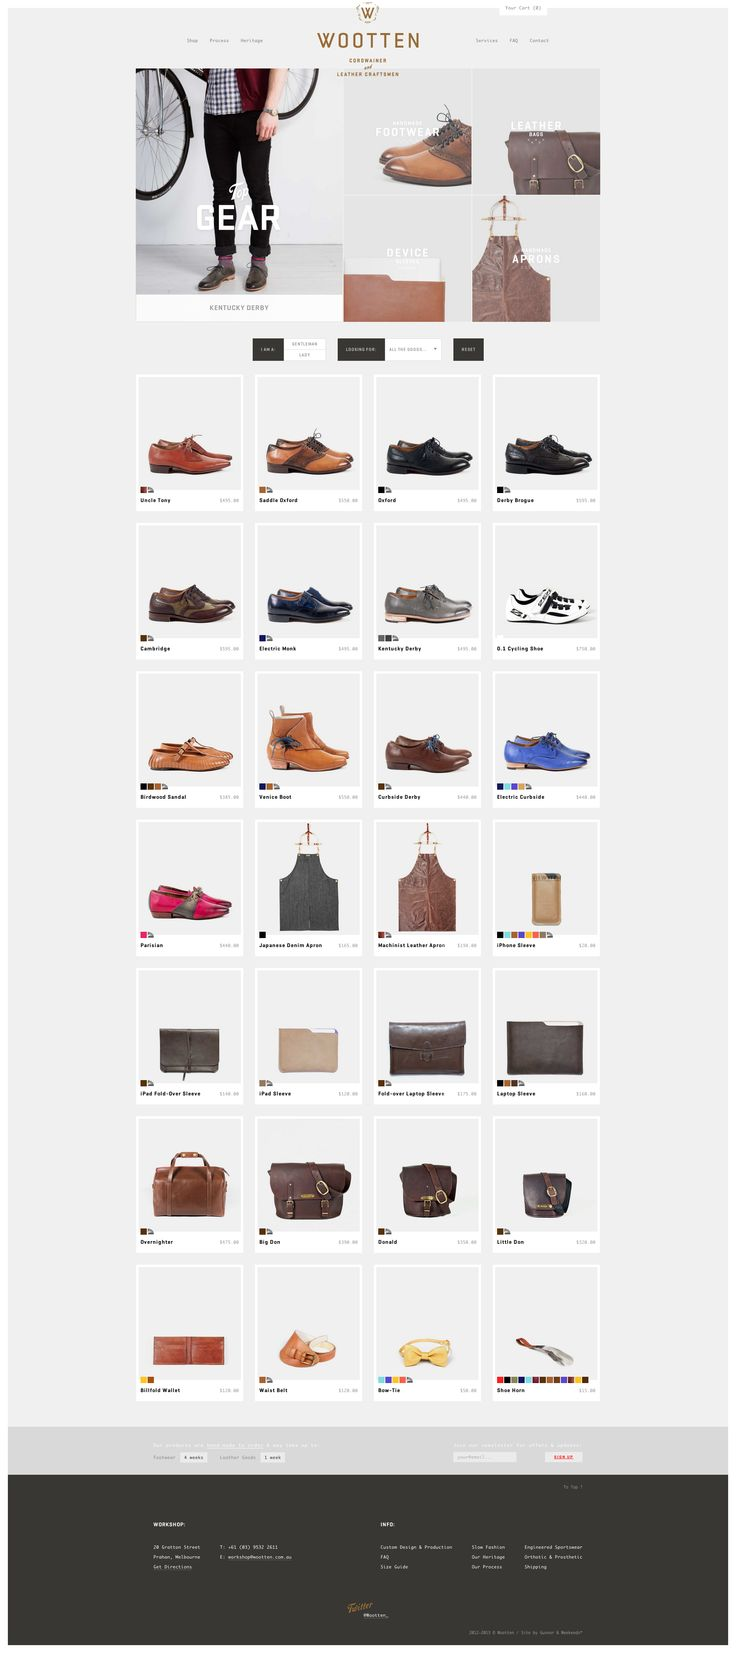 #websitedesign #webdesign #ecommerce #shop #fashion #footwear #shoes #grid #filters